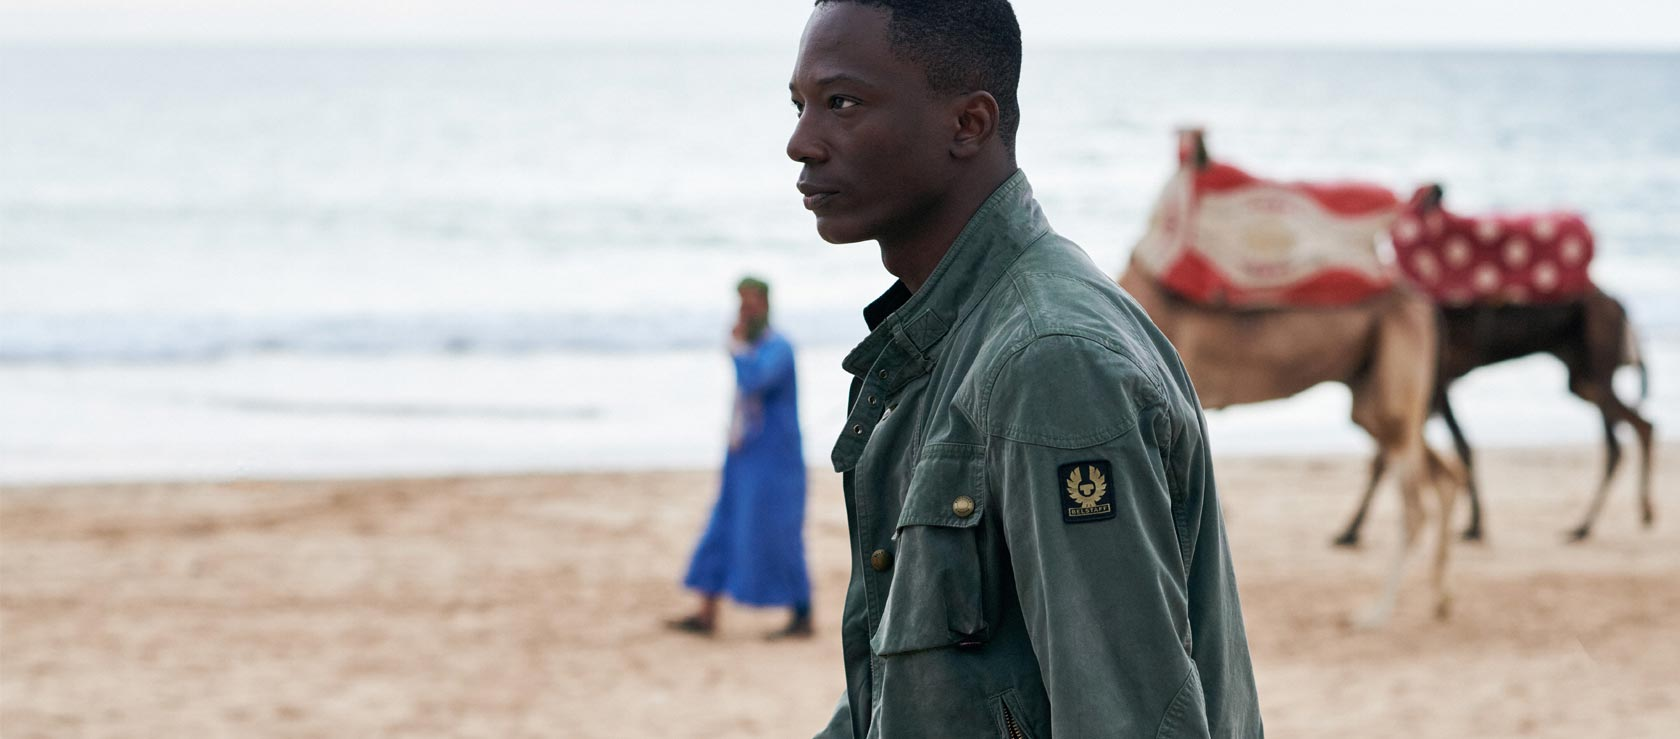 belstaff background